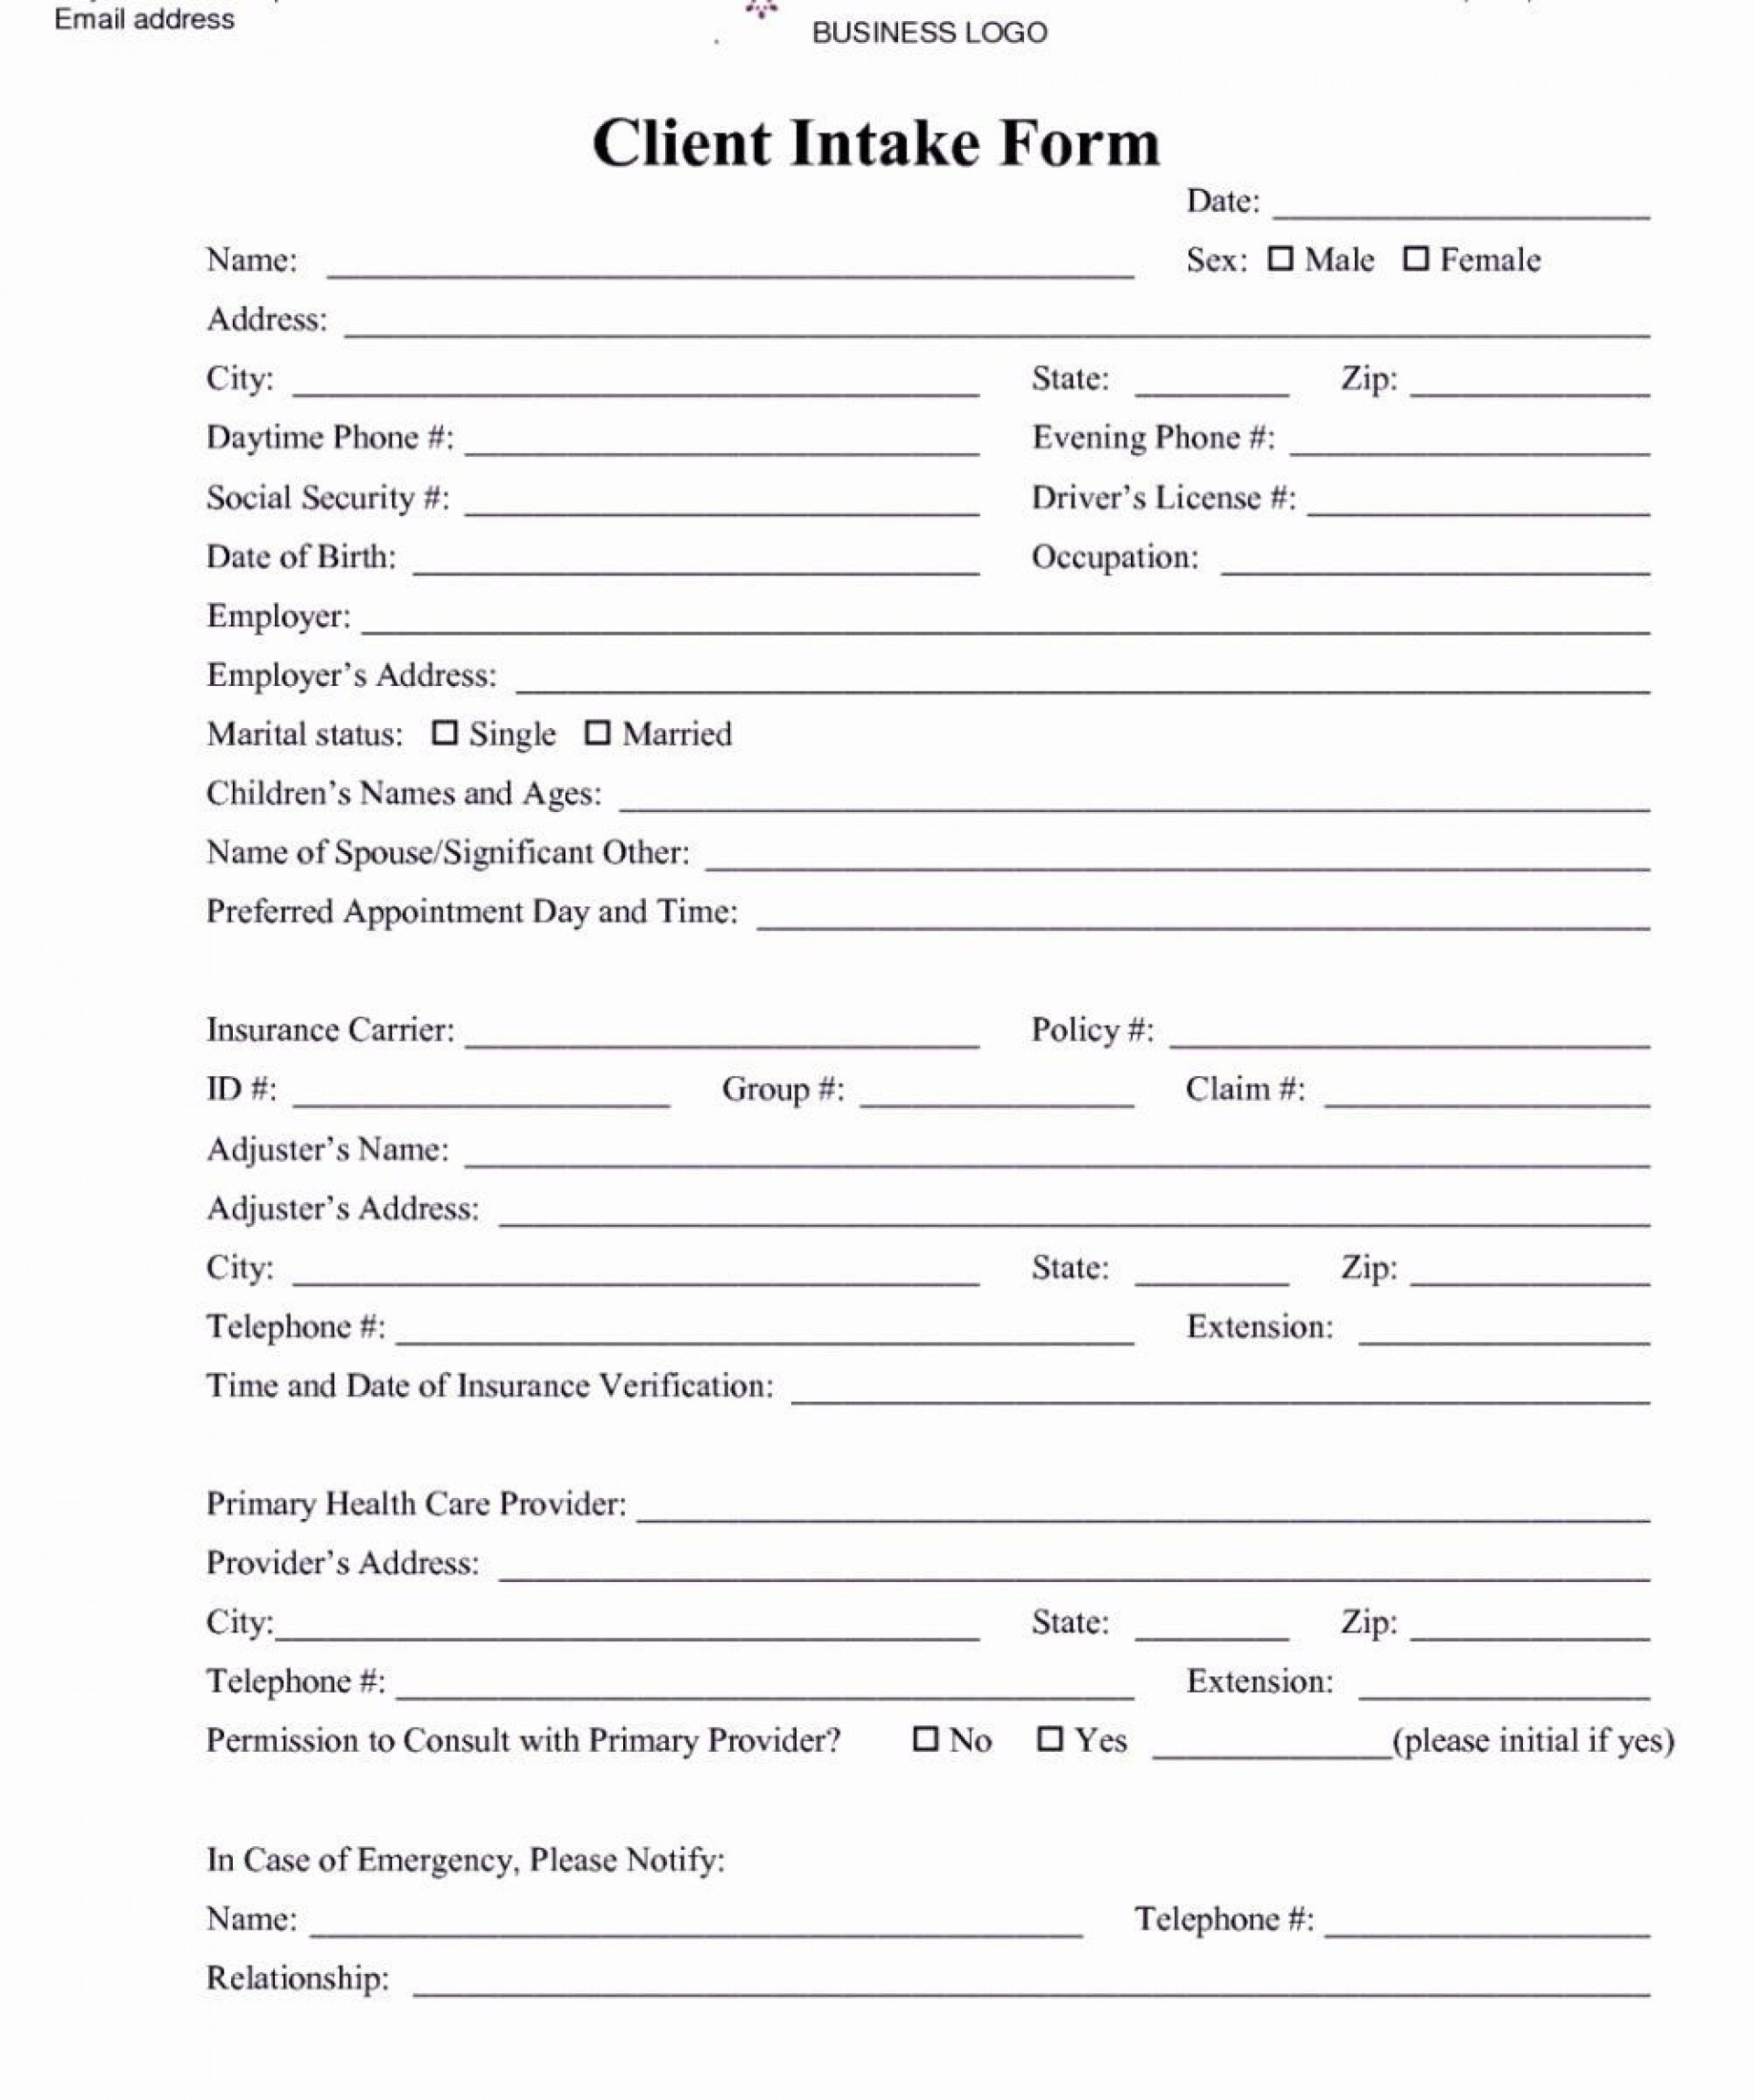 002 Impressive Free Patient Intake Form Template Image  Massage Client New1920